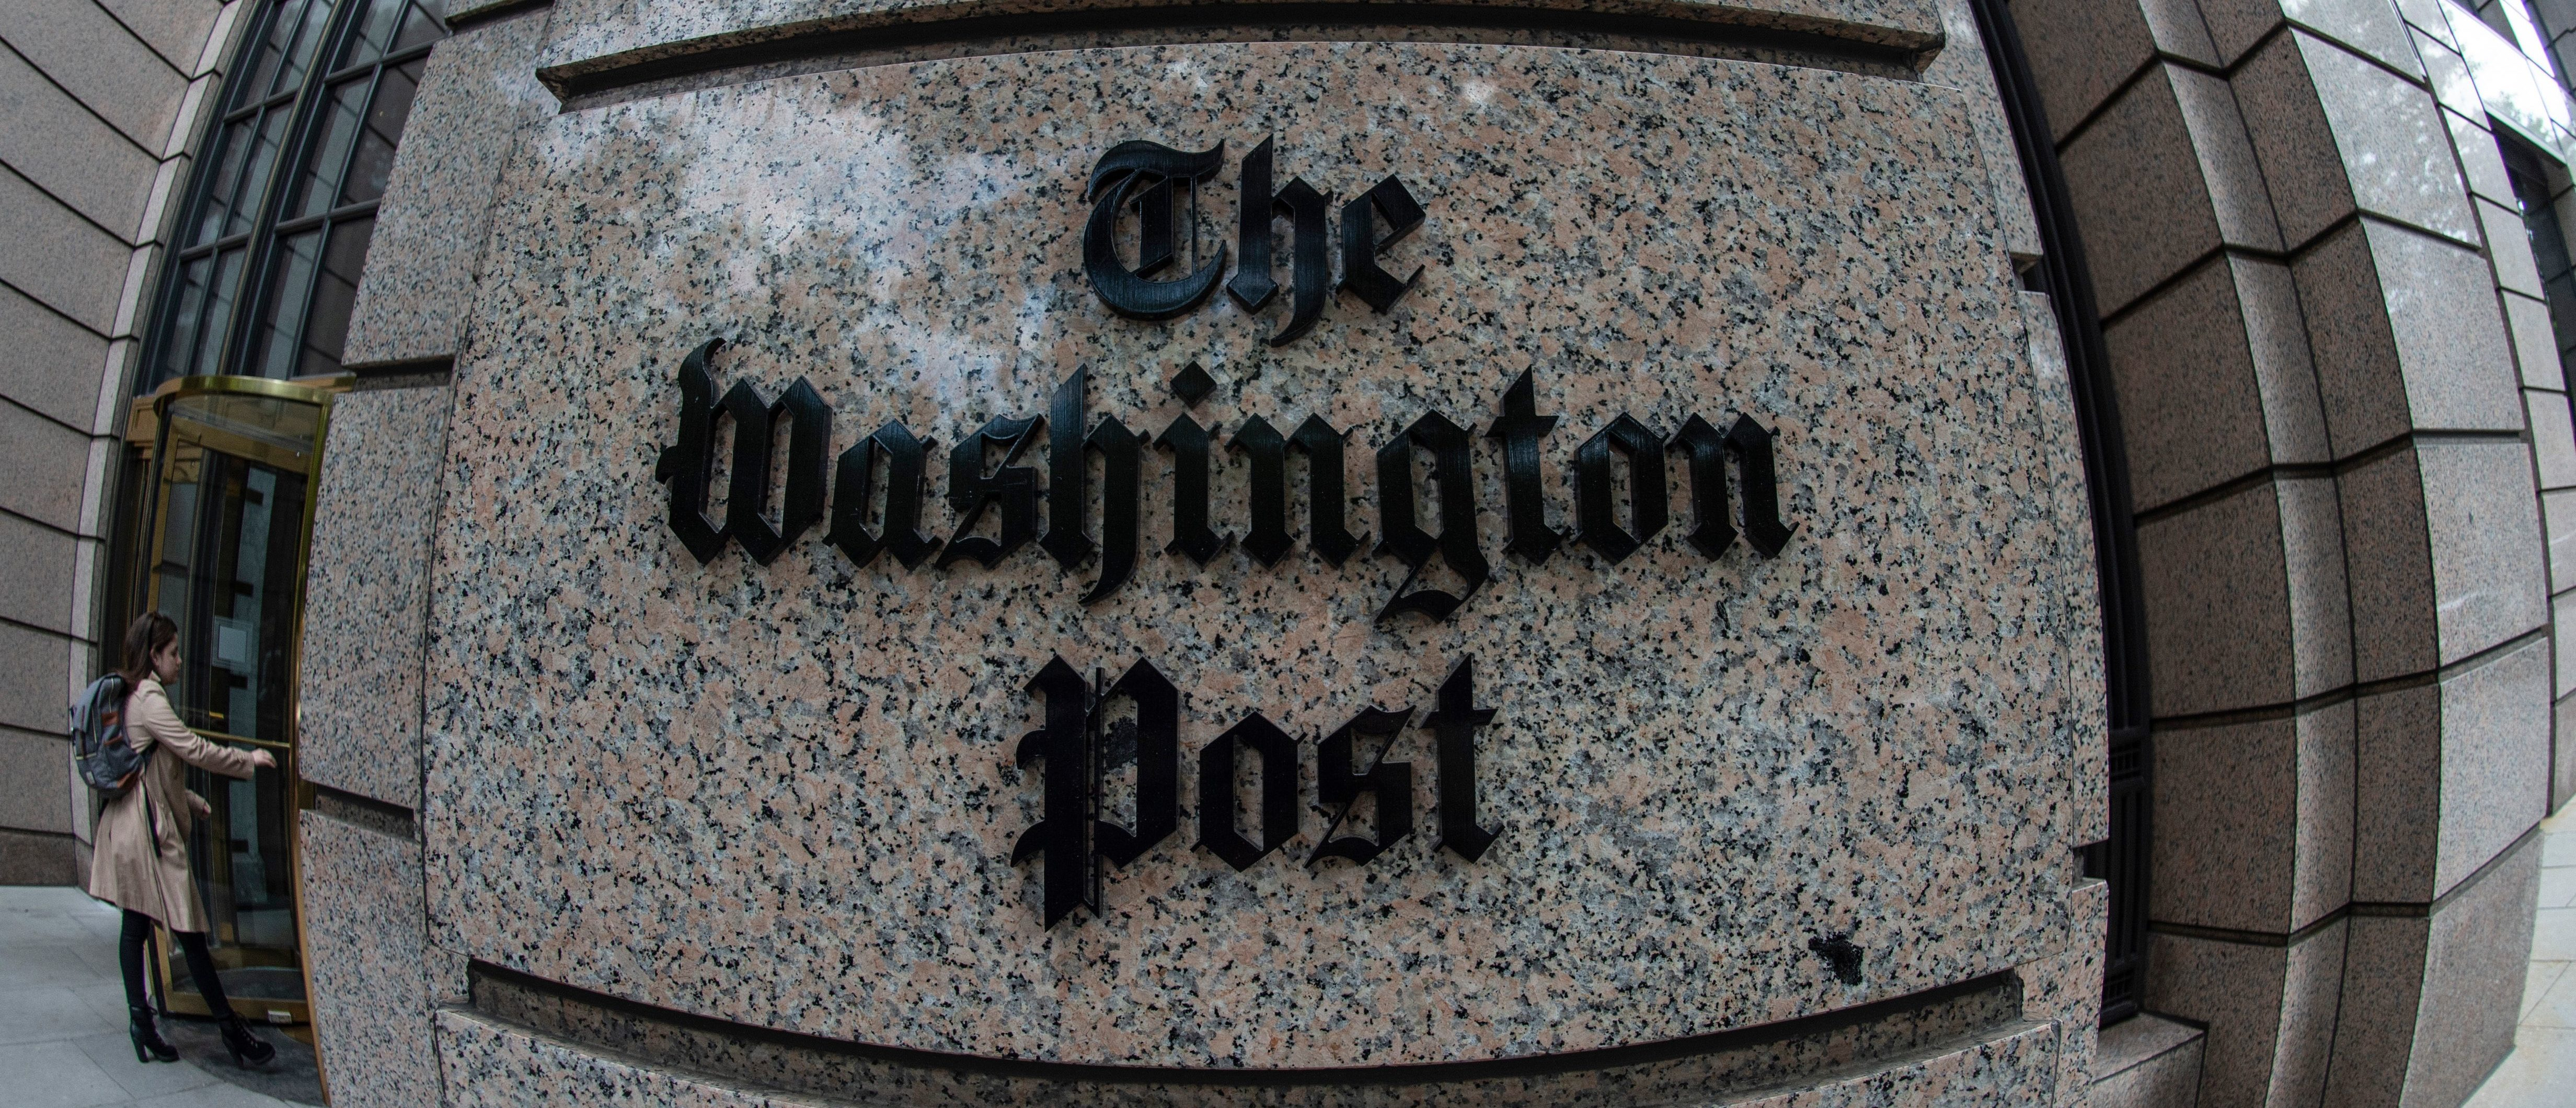 Washington Post Publishes, Retracts Attempt To Link Conservative Author To White Nationalism